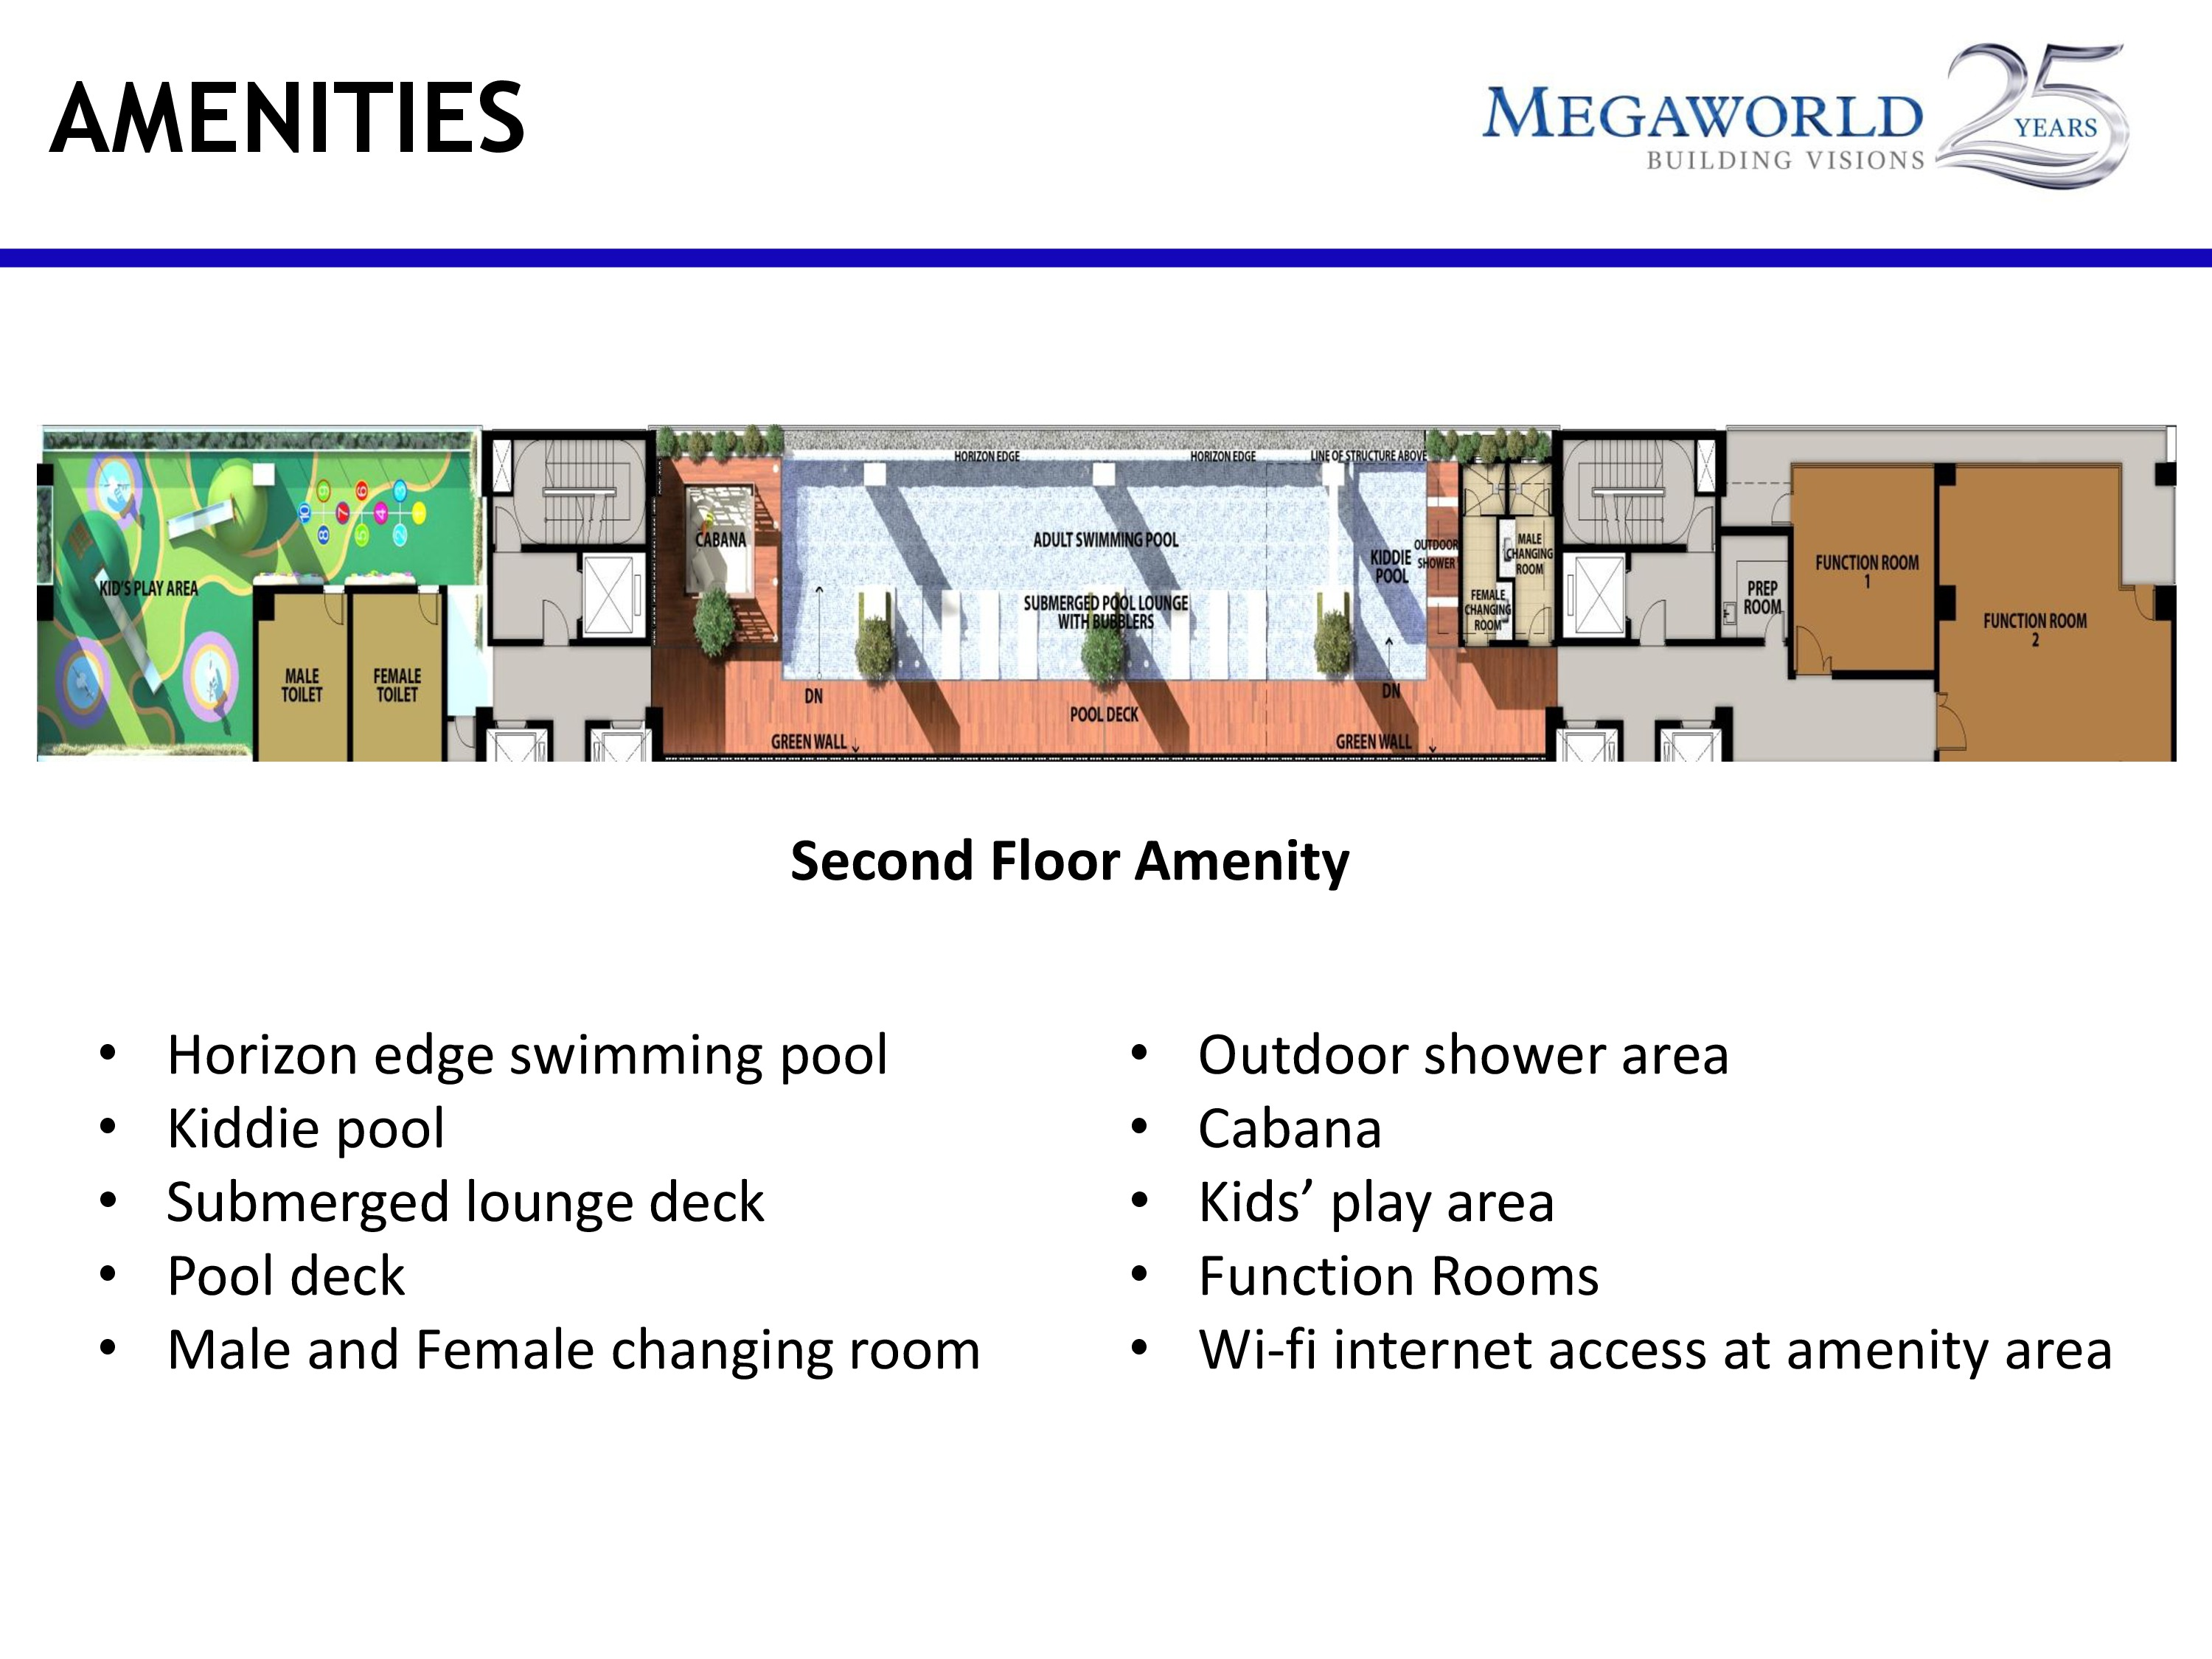 The Albany - Megaworld Amenities at second floor